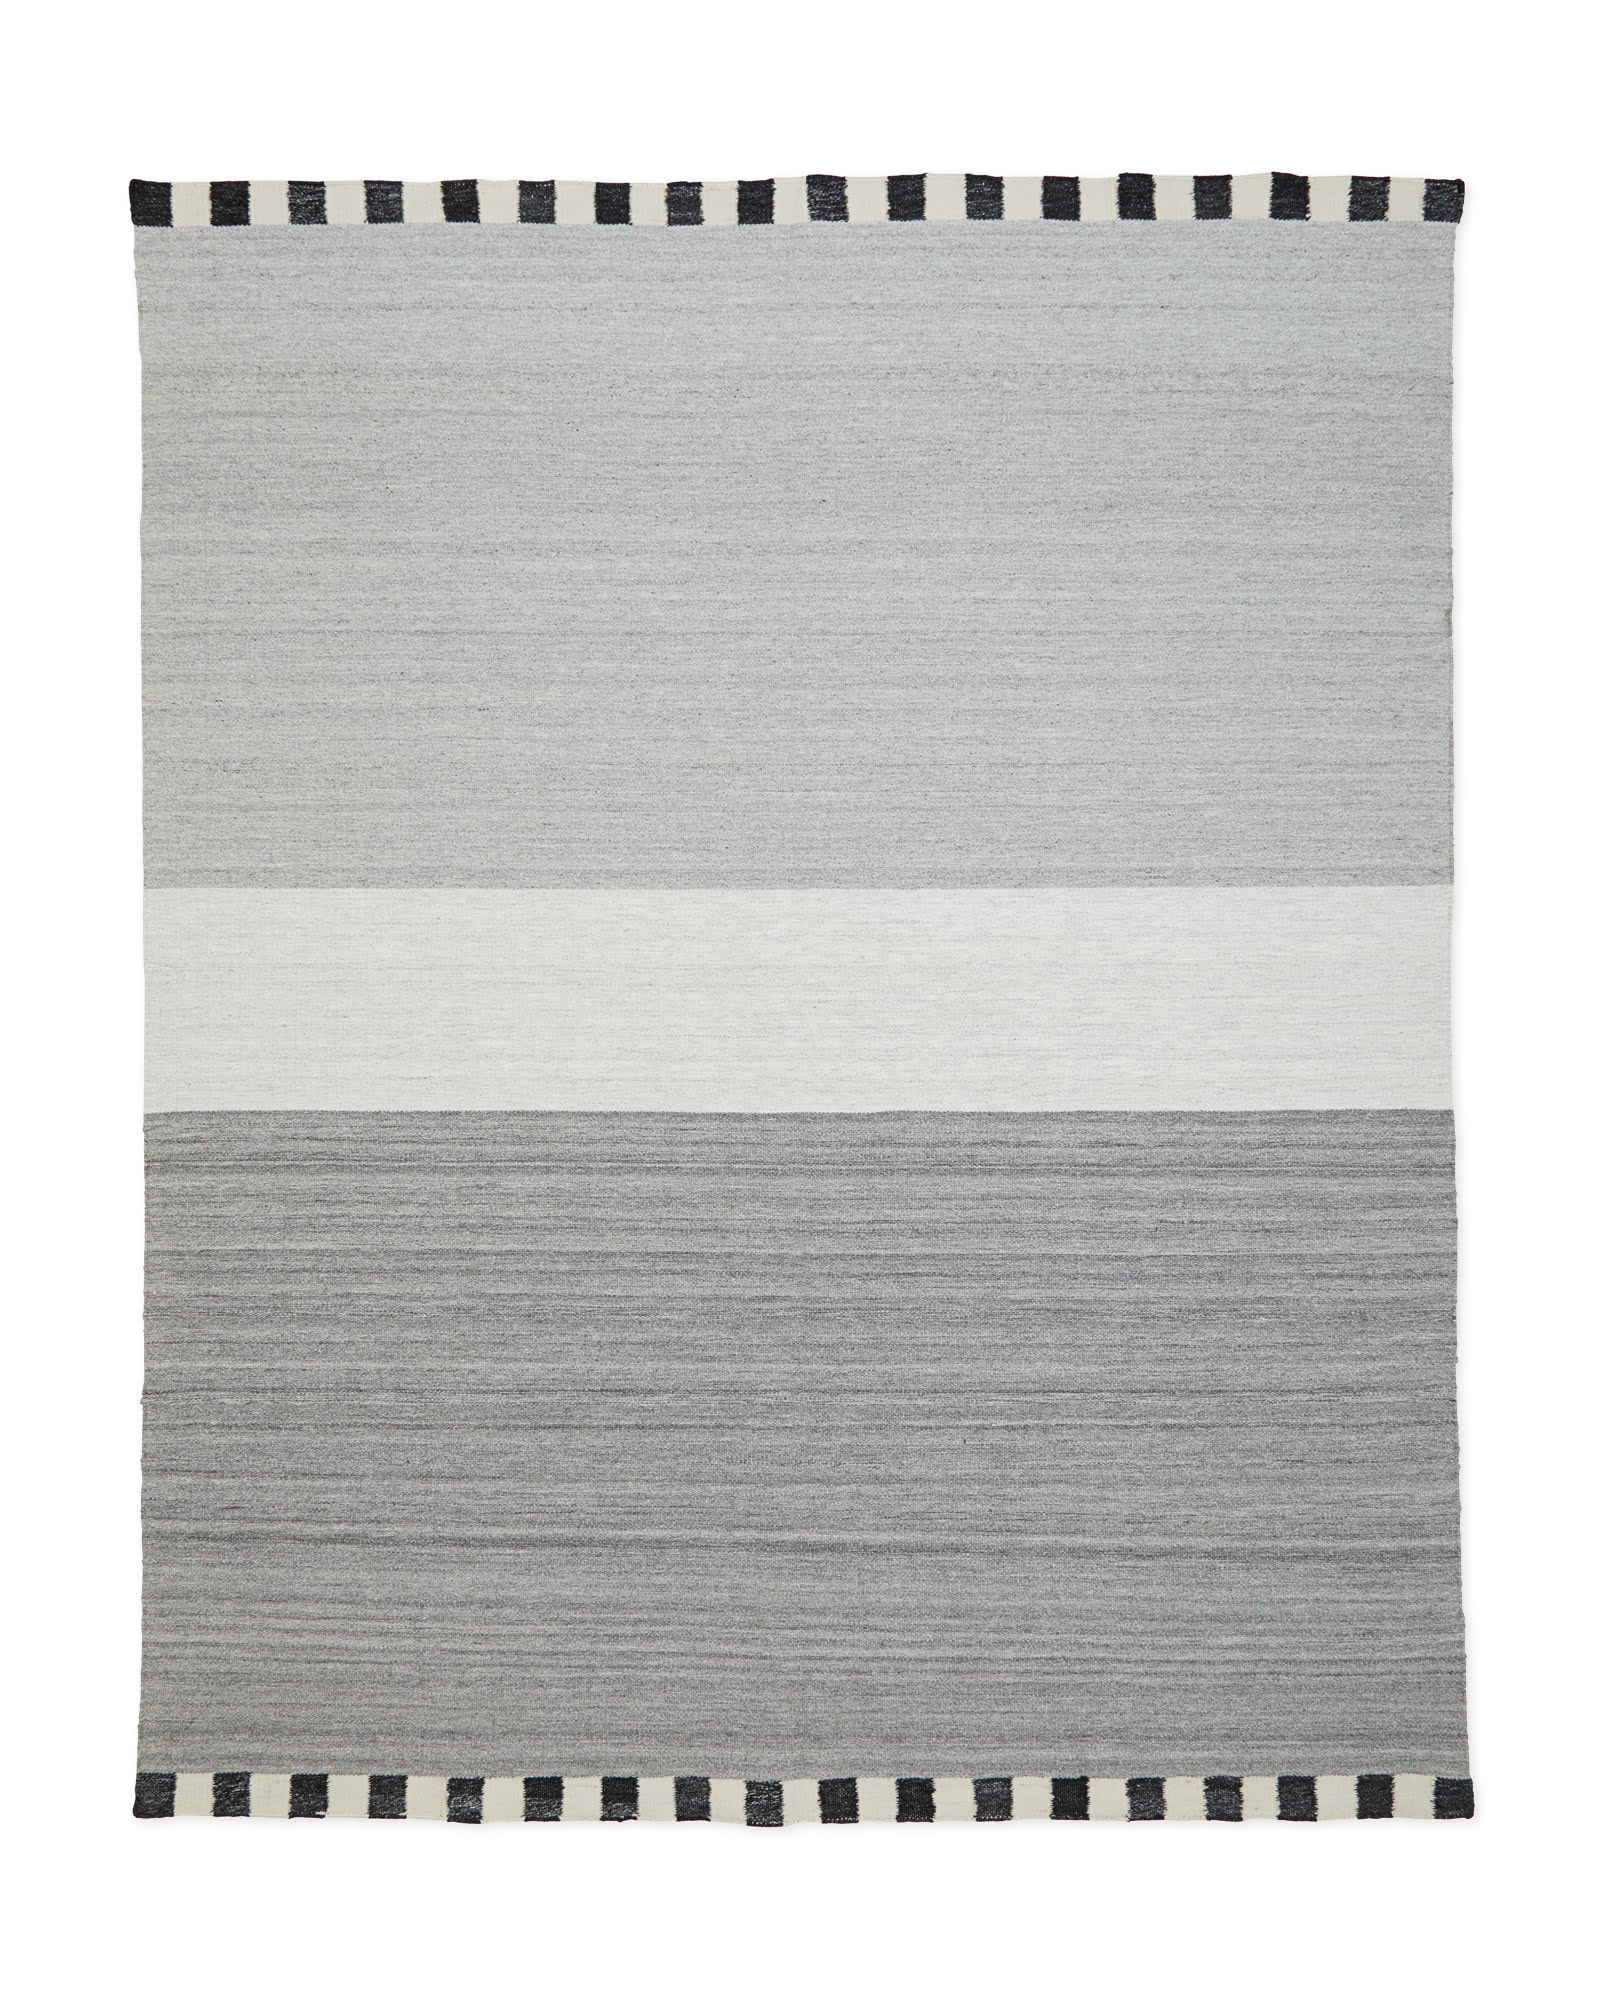 Savannah Stripe Outdoor Rug,